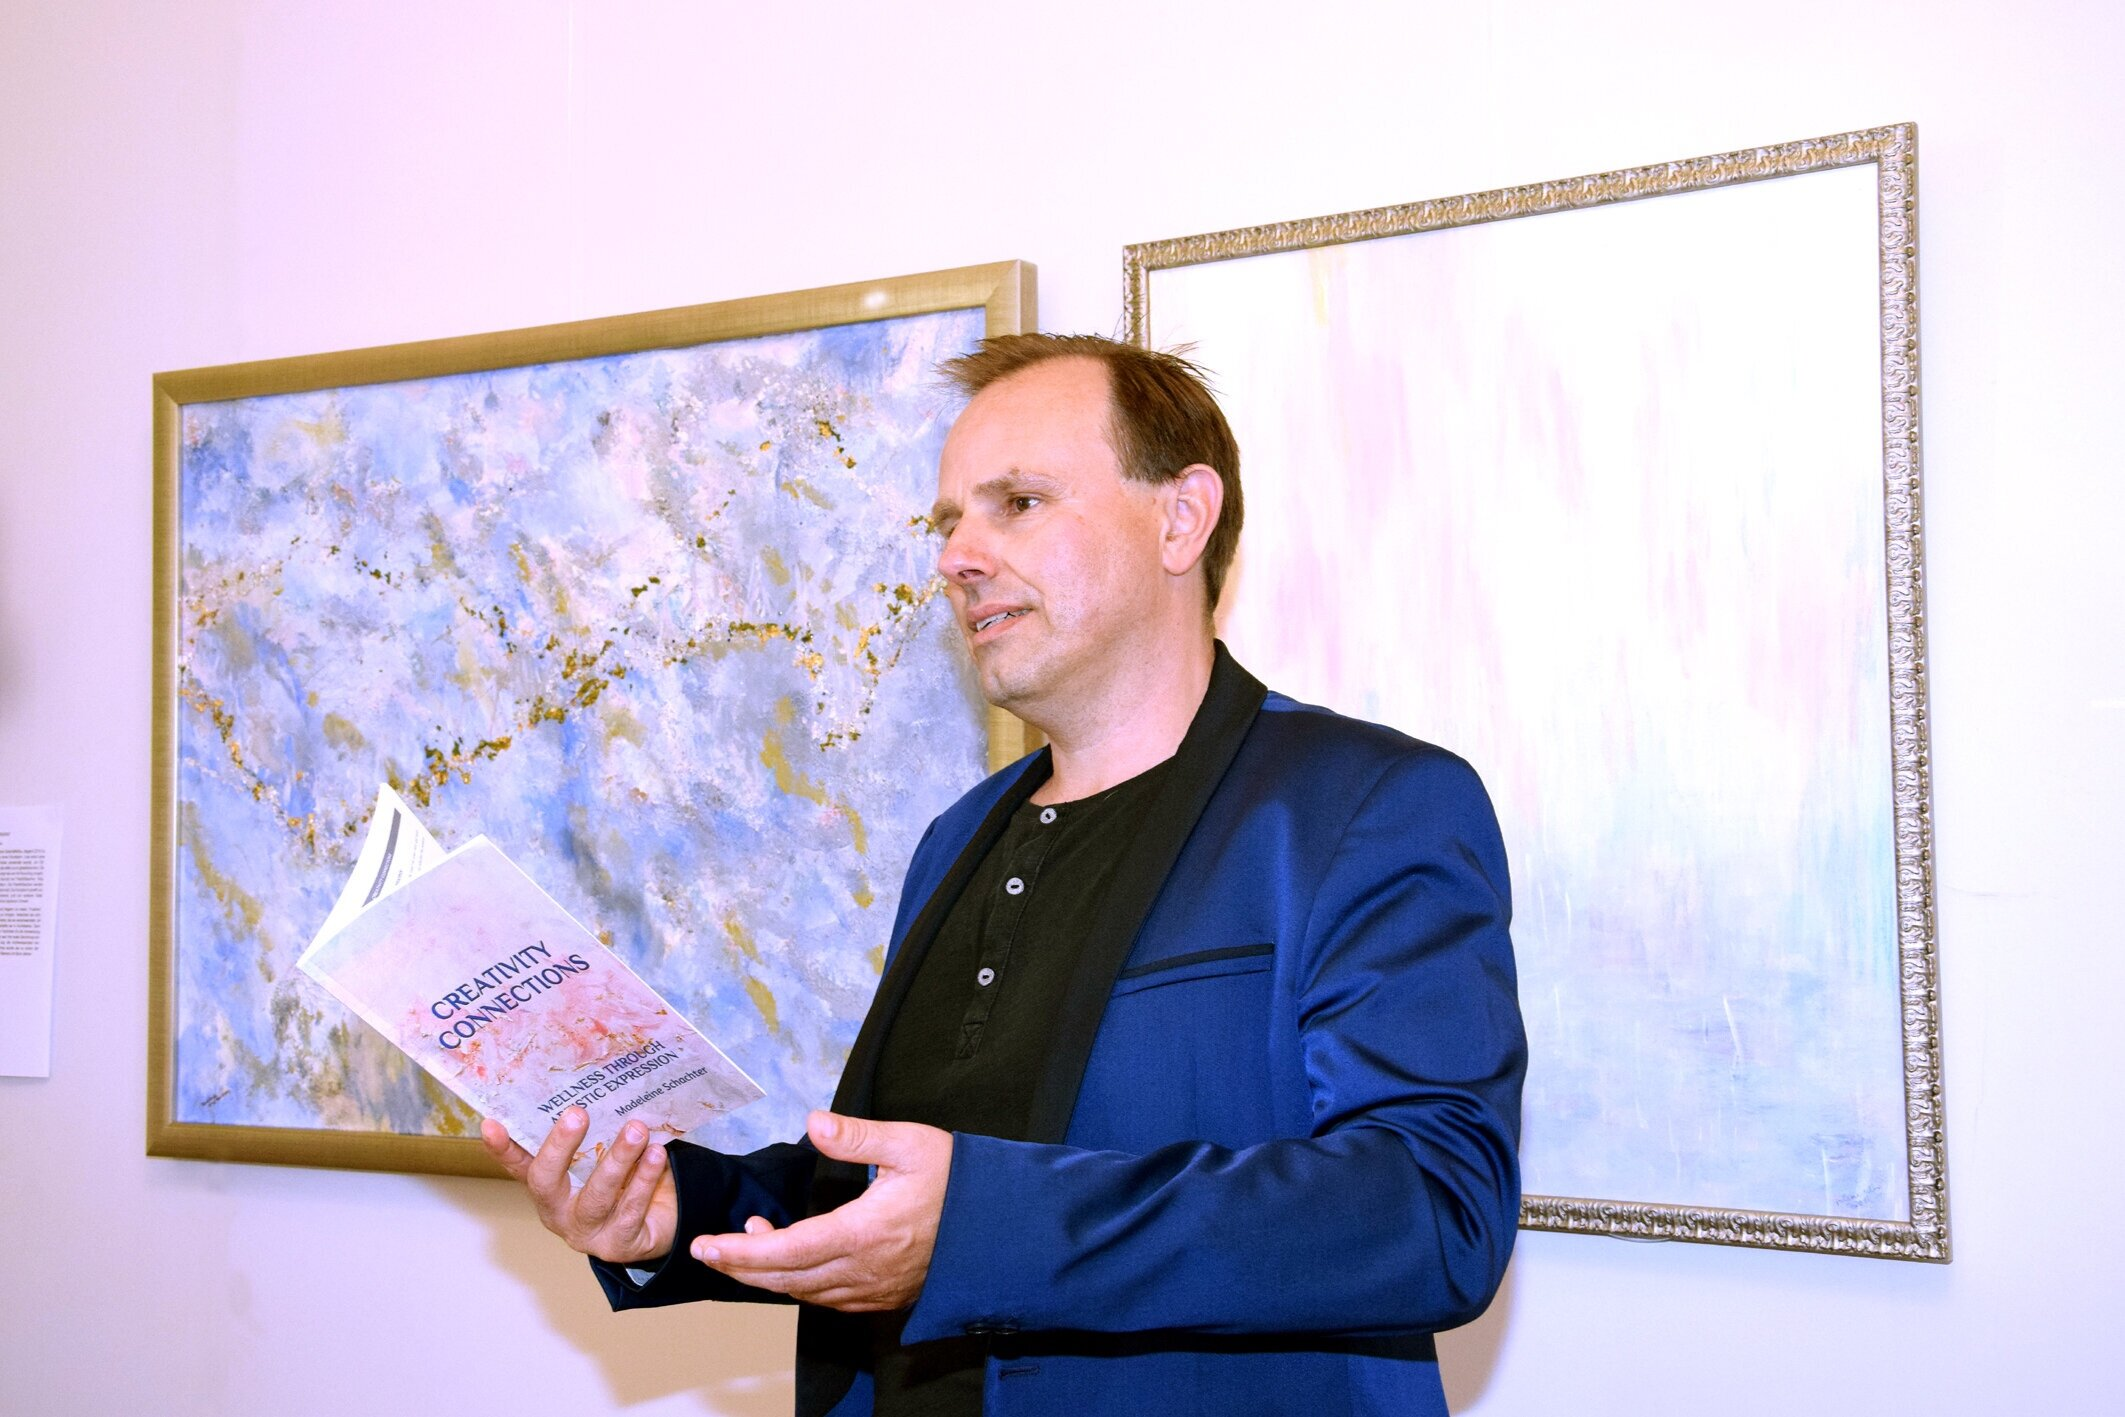 Curator and Director of MAMAG Modern Art Museum Heinz Playner presents artworks of Madeleine Schachter